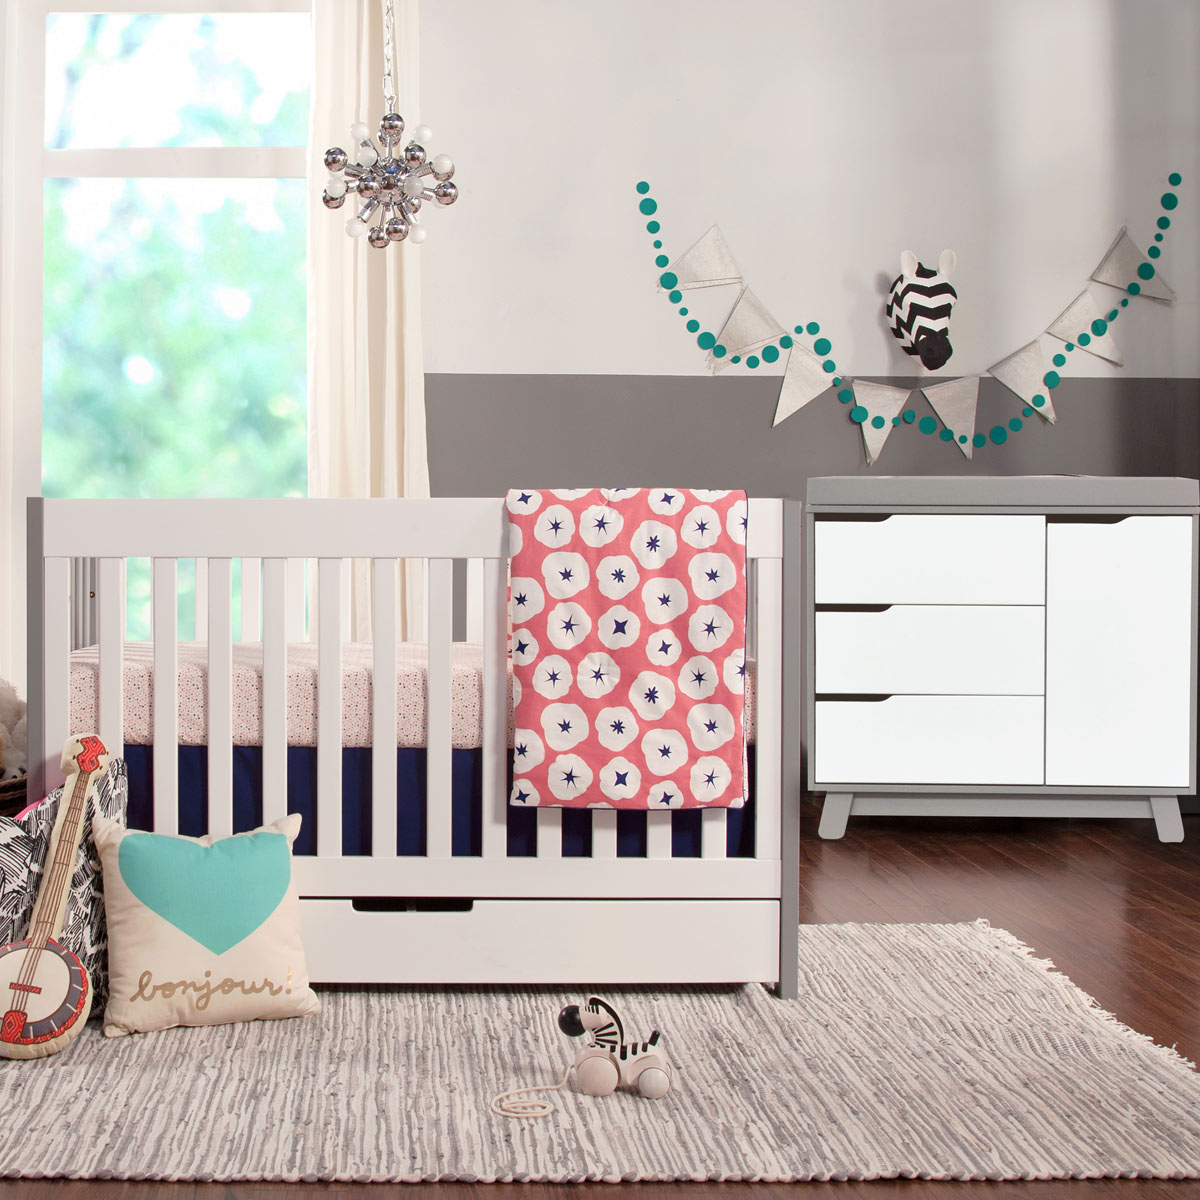 babyletto crib new crib zoom grey and white mercer convertible  - babyletto piece nursery set mercer crib and hudson changer